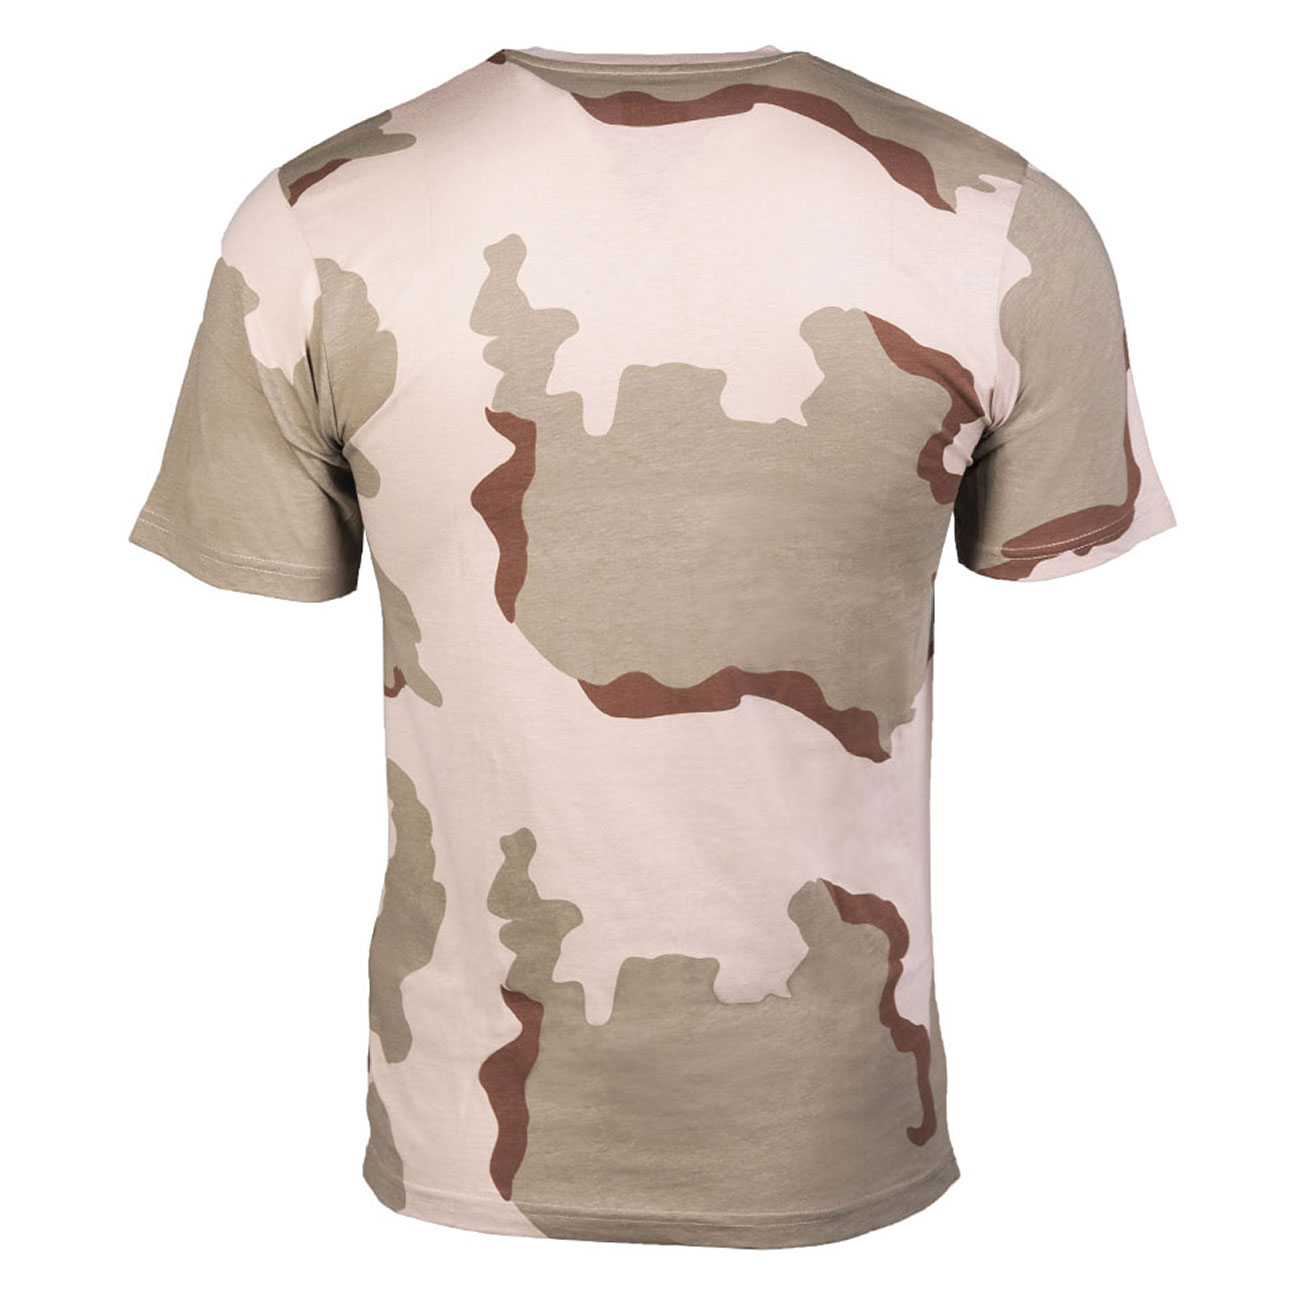 T-Shirt Tarnshirt 3-color-desert 1